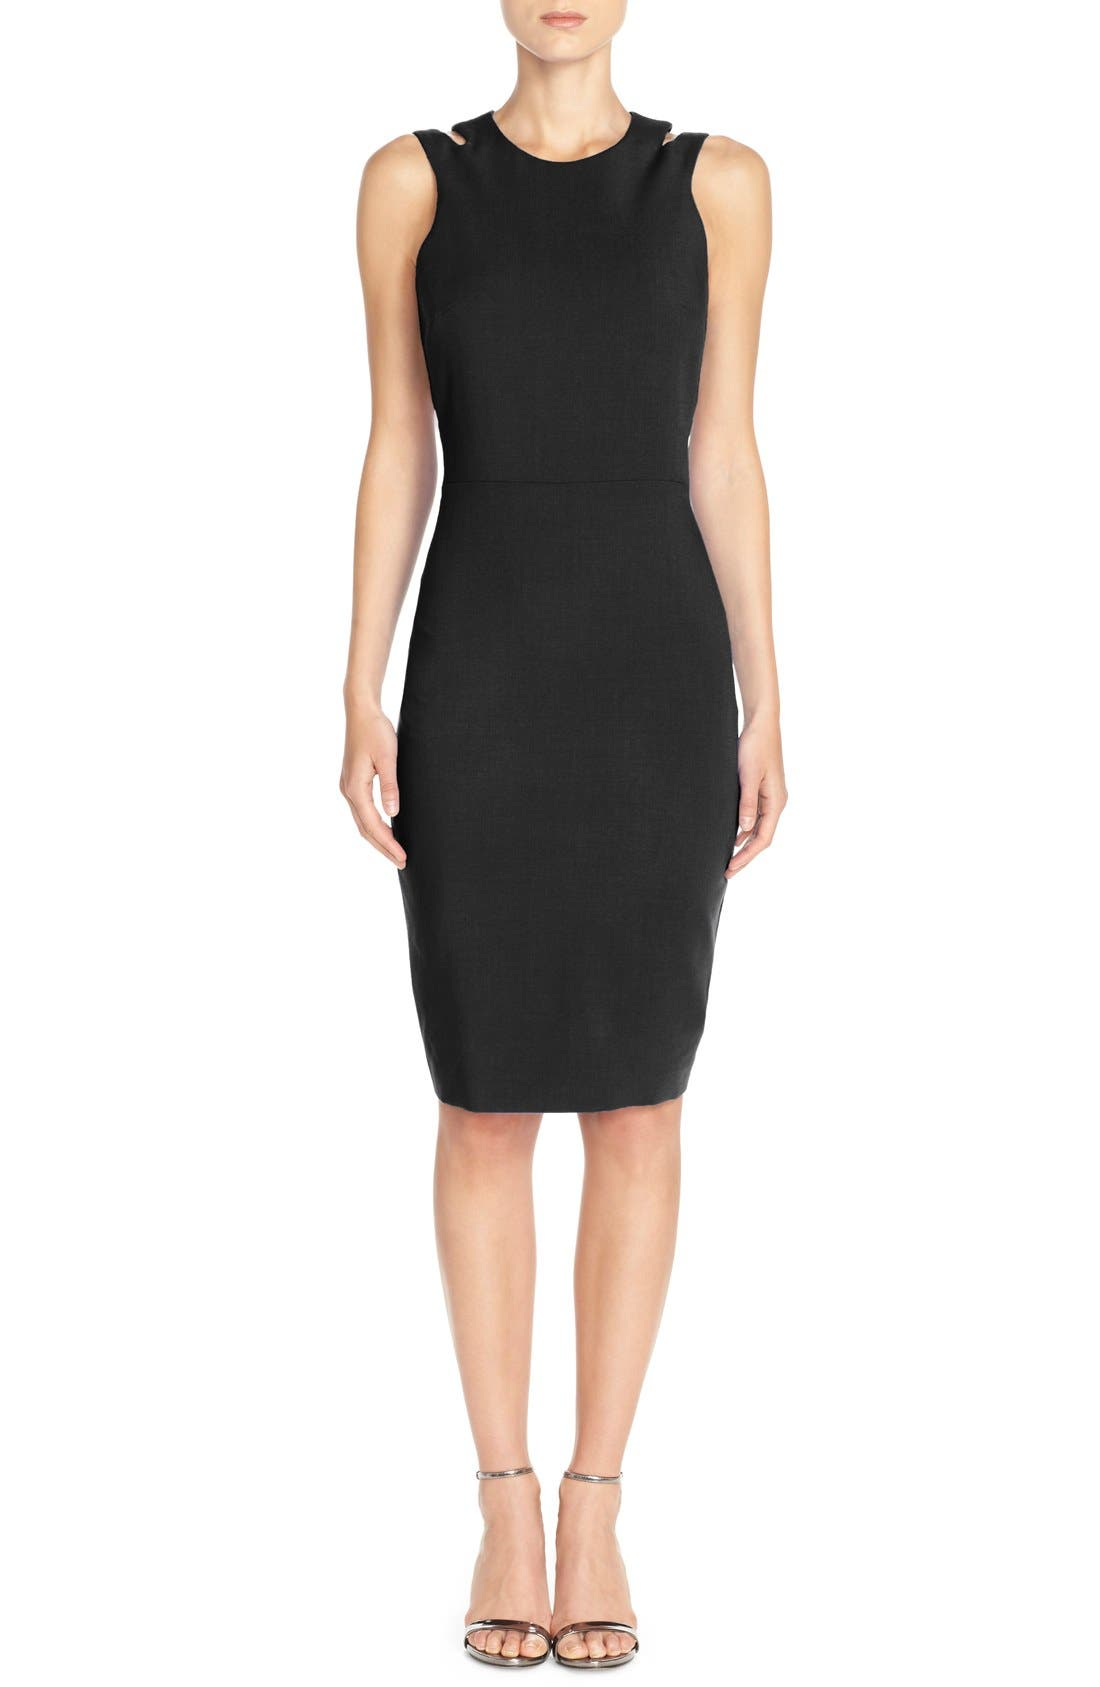 Whisper Light Cutout Dress,                             Main thumbnail 1, color,                             001